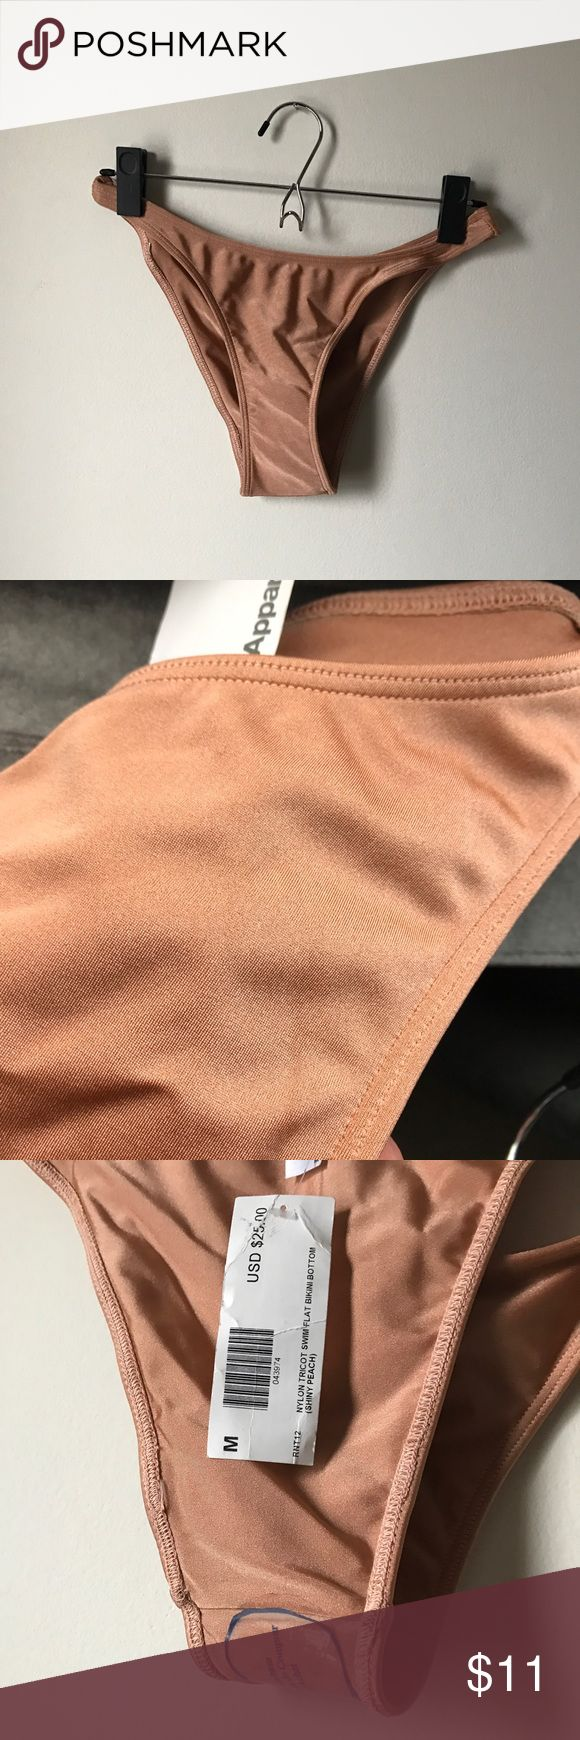 American apparel peach bathing suit bottom American apparel bikini bottom in peach. New with tags and sanitary lining. High cut keeps the leg long. Color is trendy and neutral. Wear with solid black, a print, or a similar tone for mono-chromatic look. American Apparel Swim Bikinis